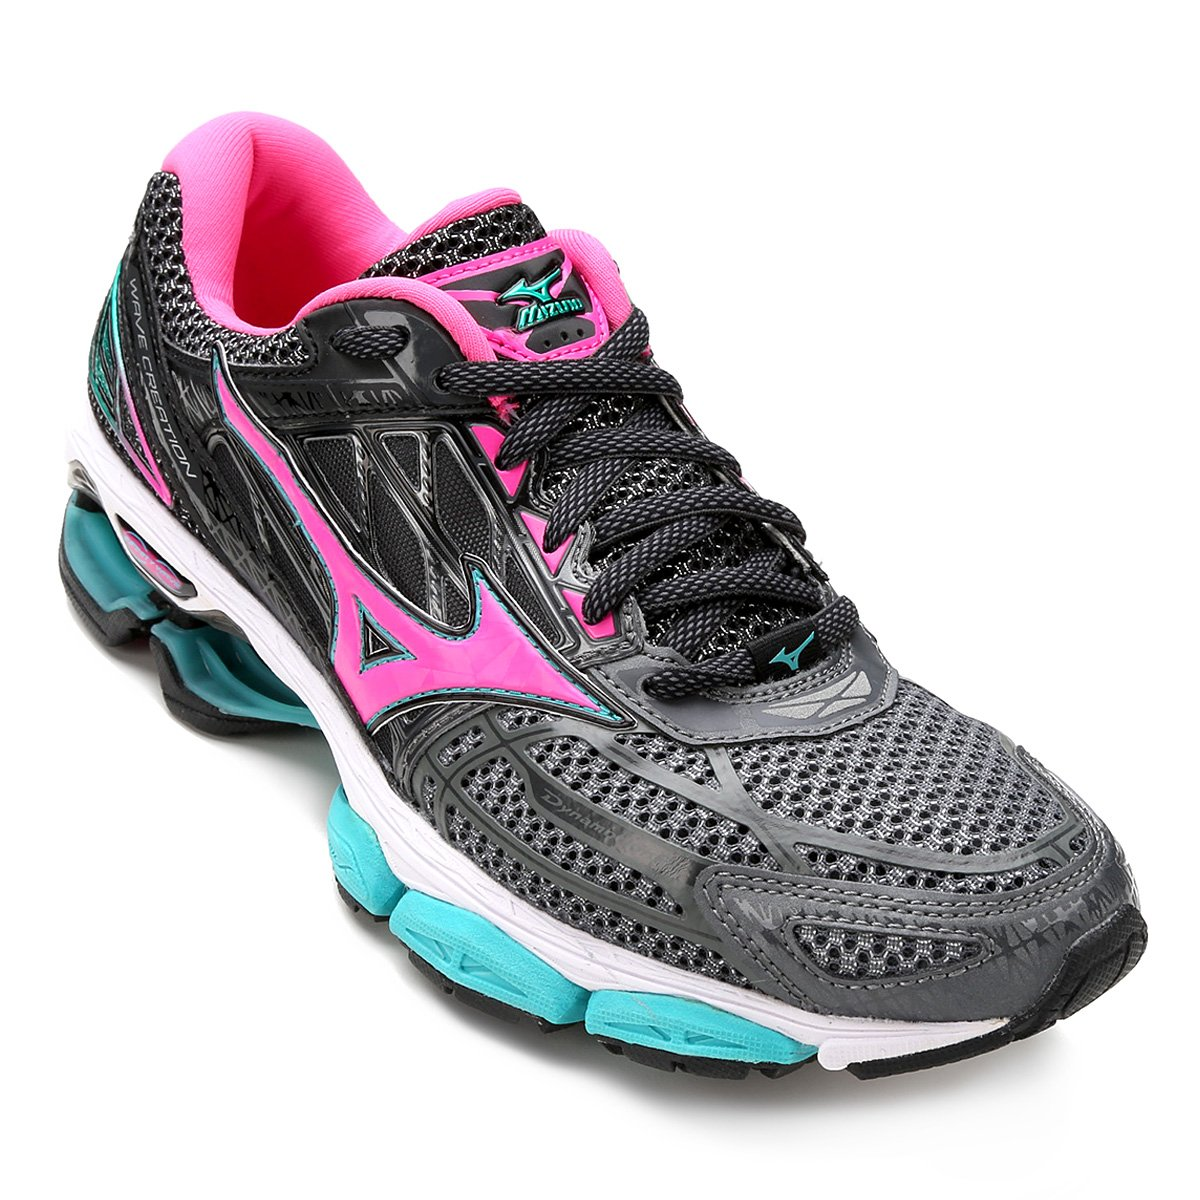 66660d17591 Tênis Mizuno Wave Creation 19 Feminino - Tam  37 - Shopping TudoAzul